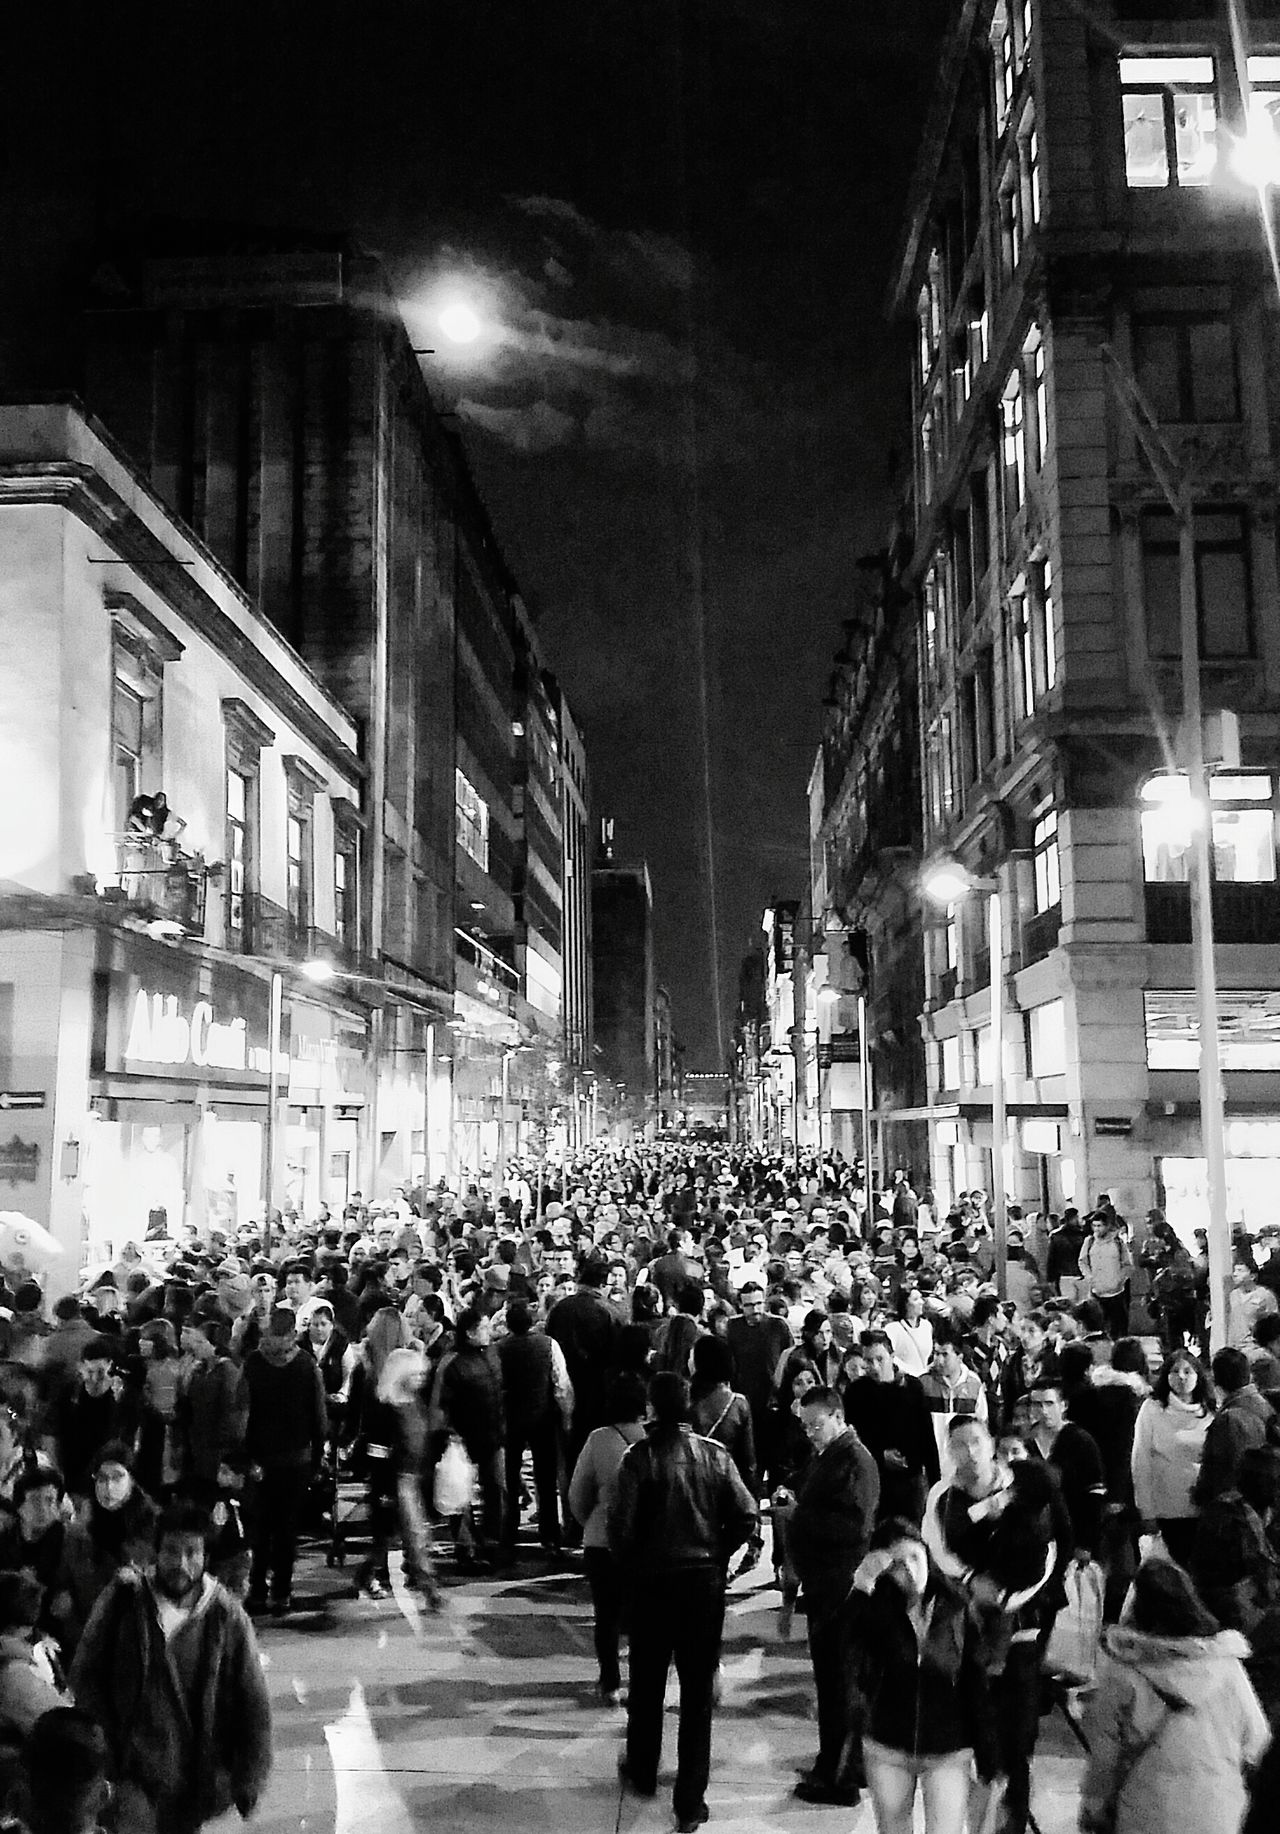 """This past weekend I went to the city center, to the festival of lights filux CDMX, to enter the zócalo of the city can be done by Madero Street, a street where thousands of people pass the day for being so popular, this Photo I take Saturday night, what do you think? I post it on my social networks with the following sentence: """"Photography can only represent the present. Once photographed, photography becomes the past."""" Berenice Abbott. Night People Girls City Portrait Girl Silhouette Illuminated Color Portrait That's Me First Eyeem Photo Today's Hot Look EyeEm Best Shots Mexico City Cdmx2016 Faces Of EyeEm Tourism Eyeemphoto Streetphotography Festival Of Lights Mexico Selfie"""